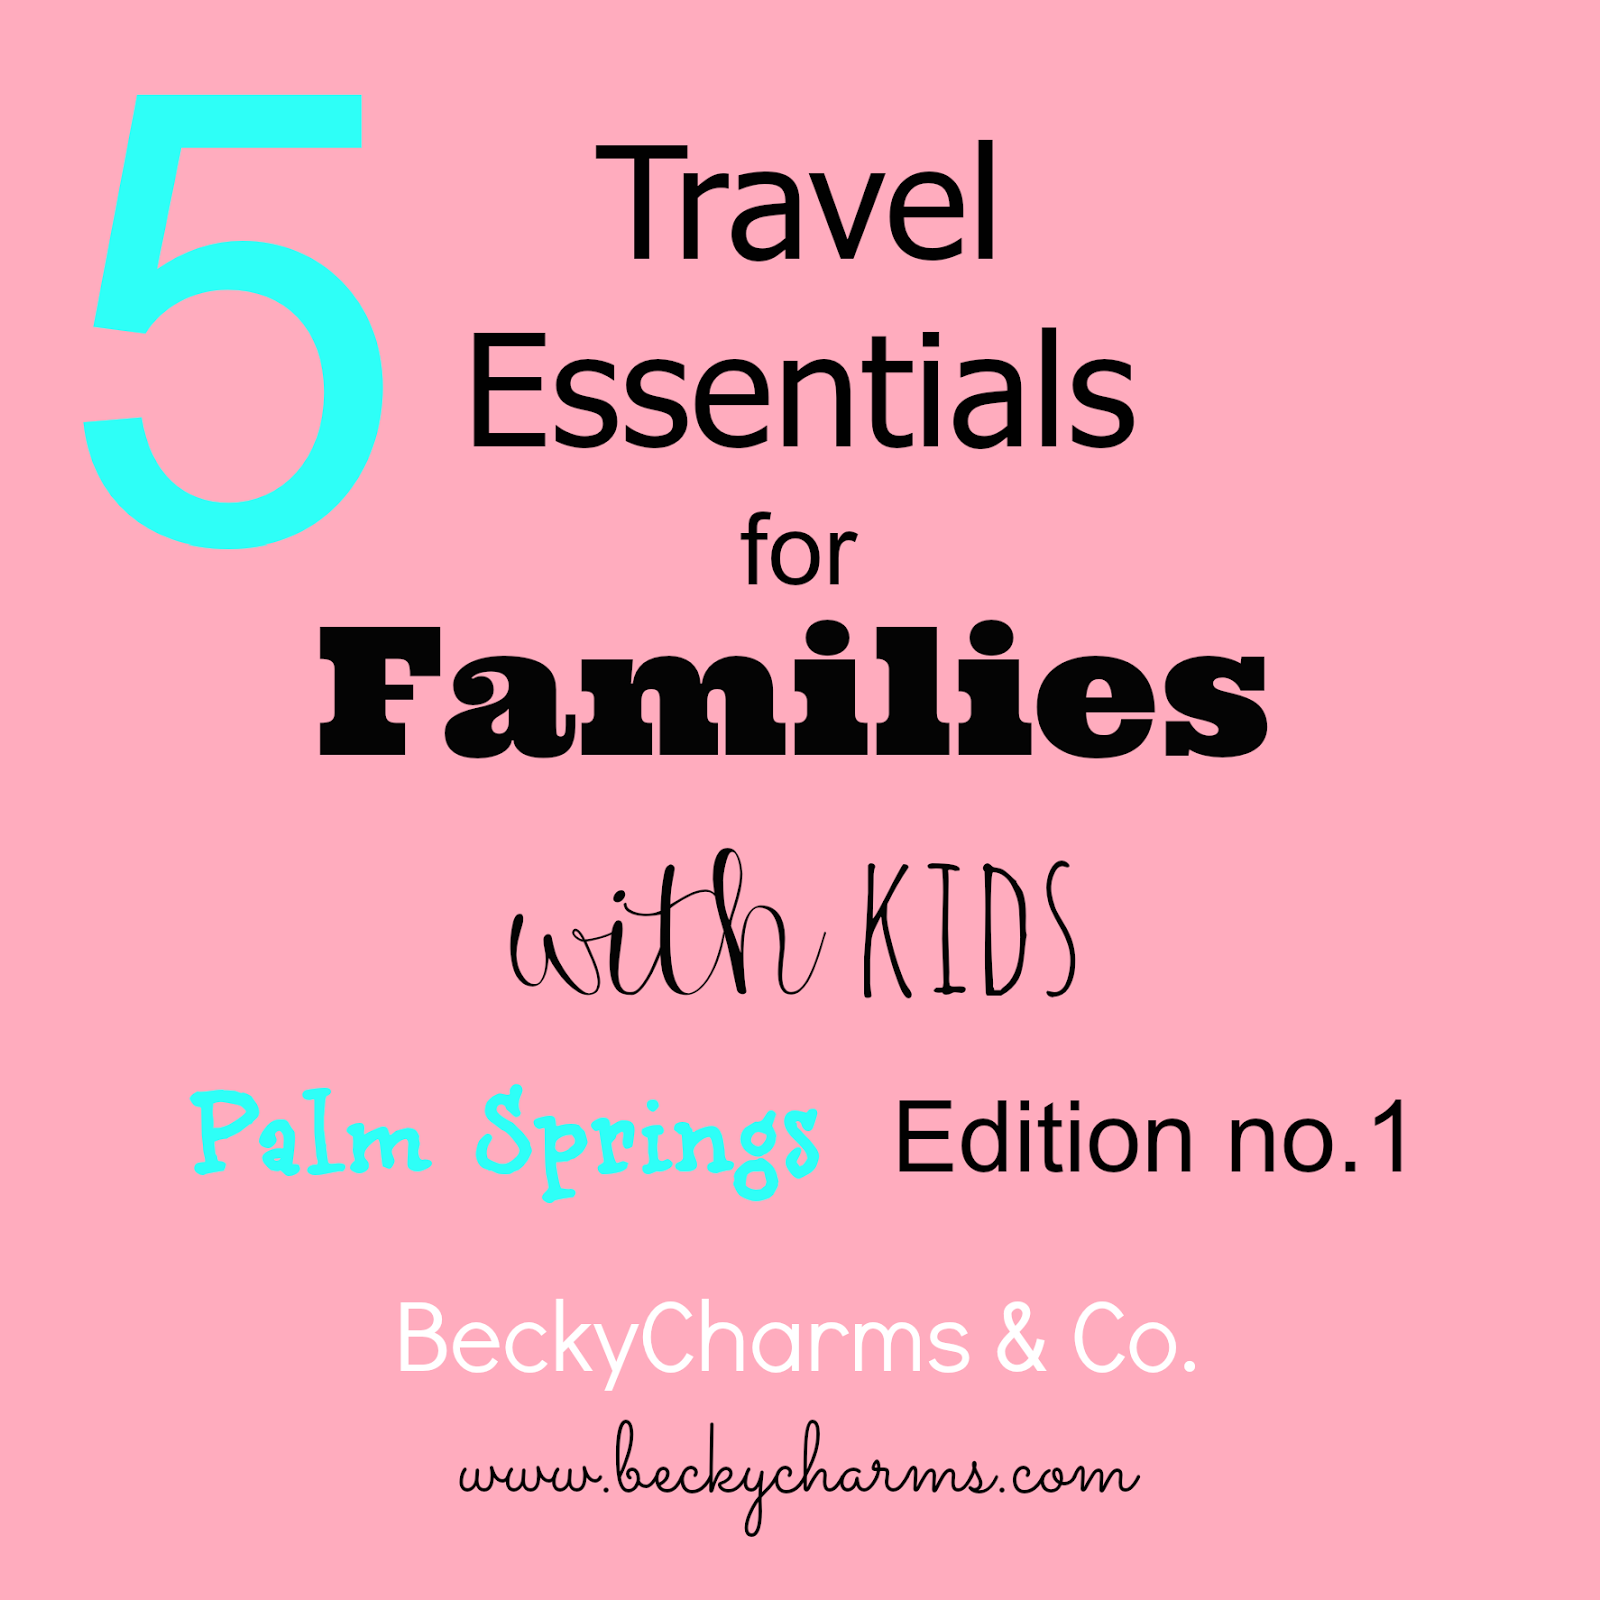 5 Travel Essentials for Families with Kids : Palm Springs Edition no.1 by BeckyCharms